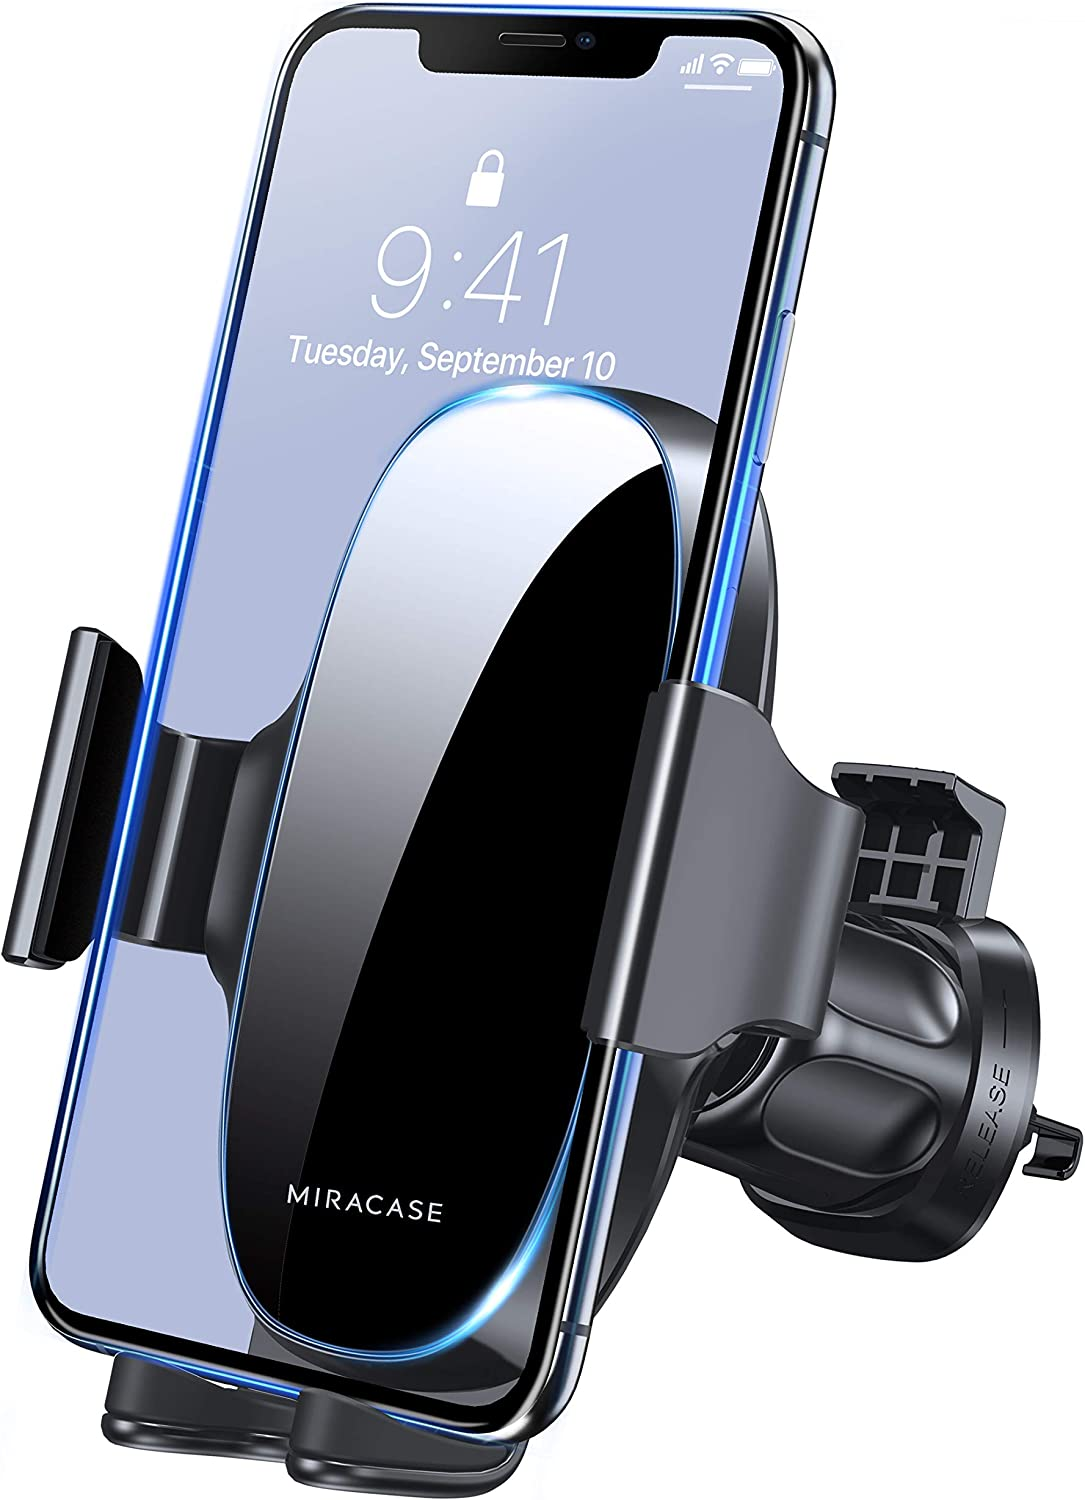 Miracase phone mount for vertical air vents